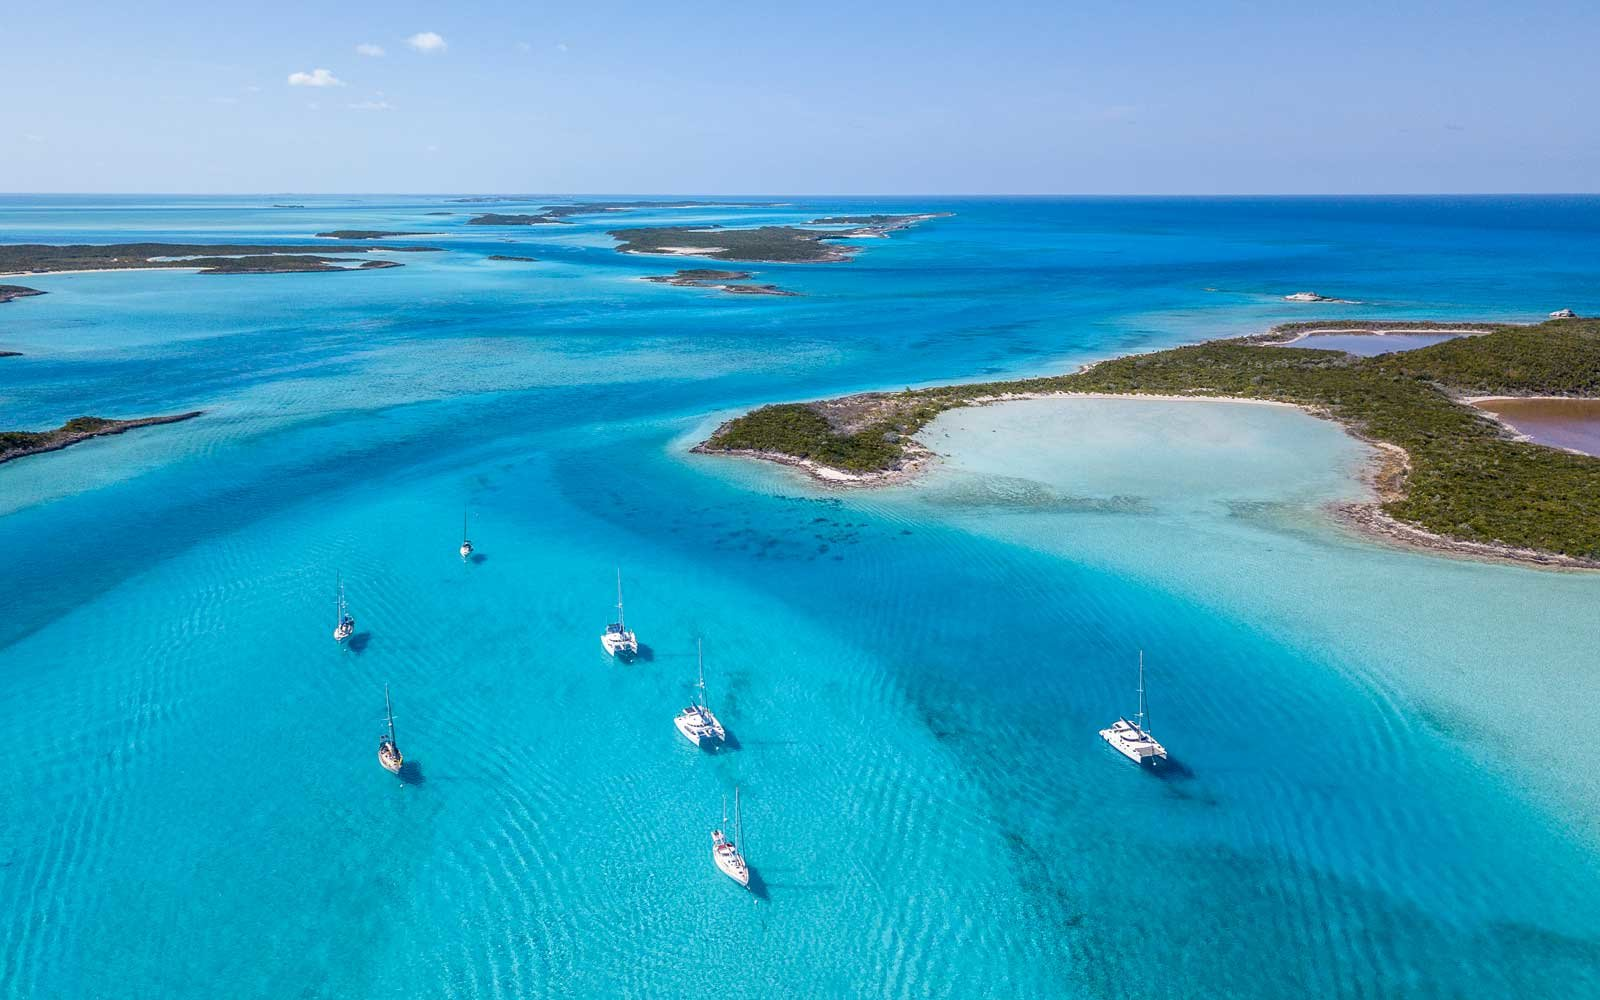 Aerial view of the Exumas islands in the Bahamas